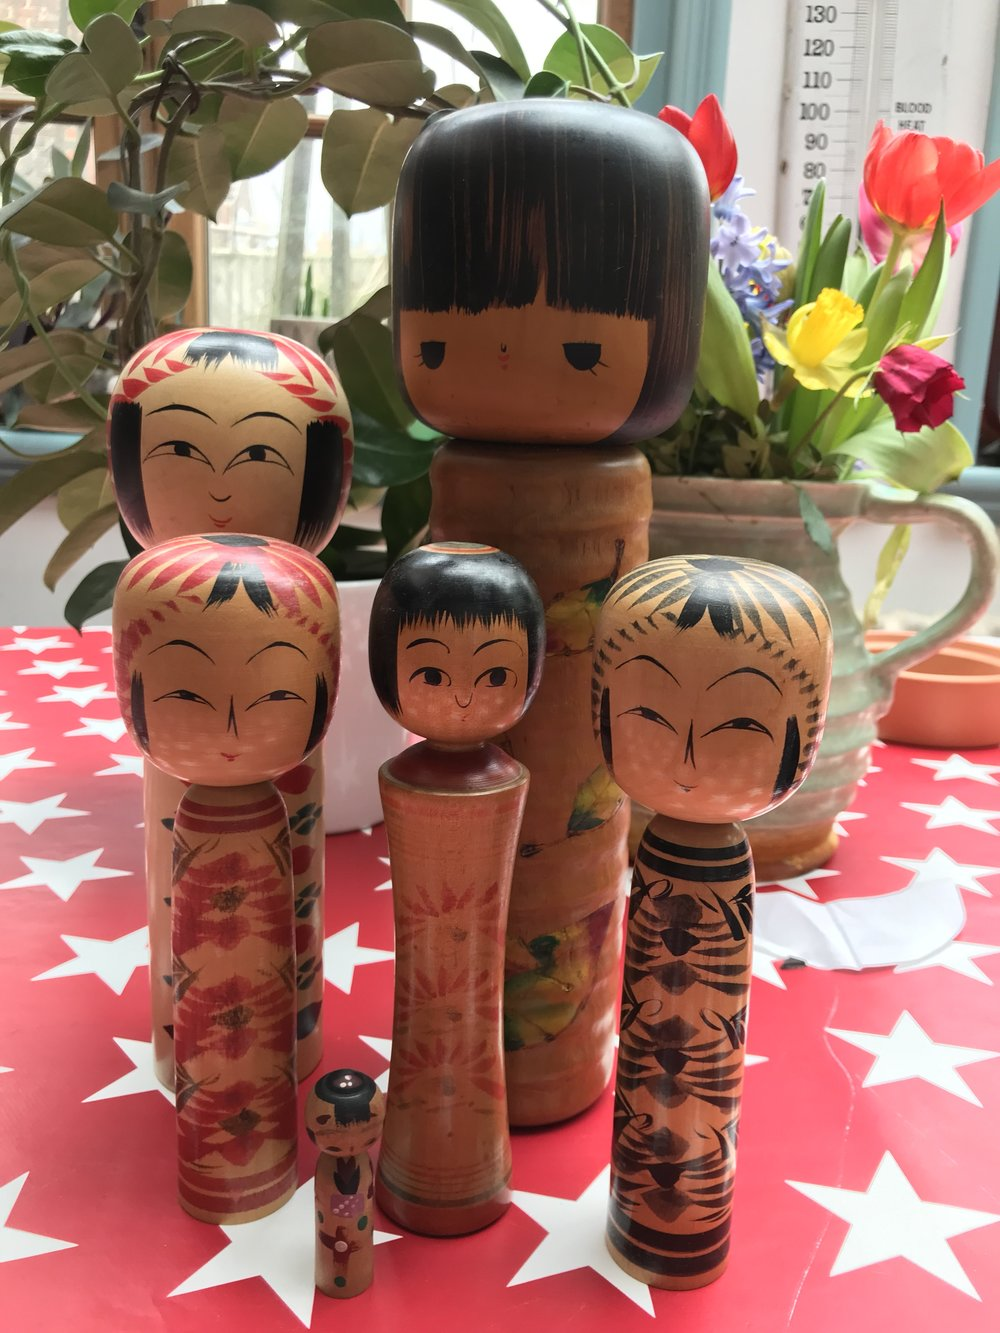 My Japanese Doll collection, back safe at home in Hailsham!